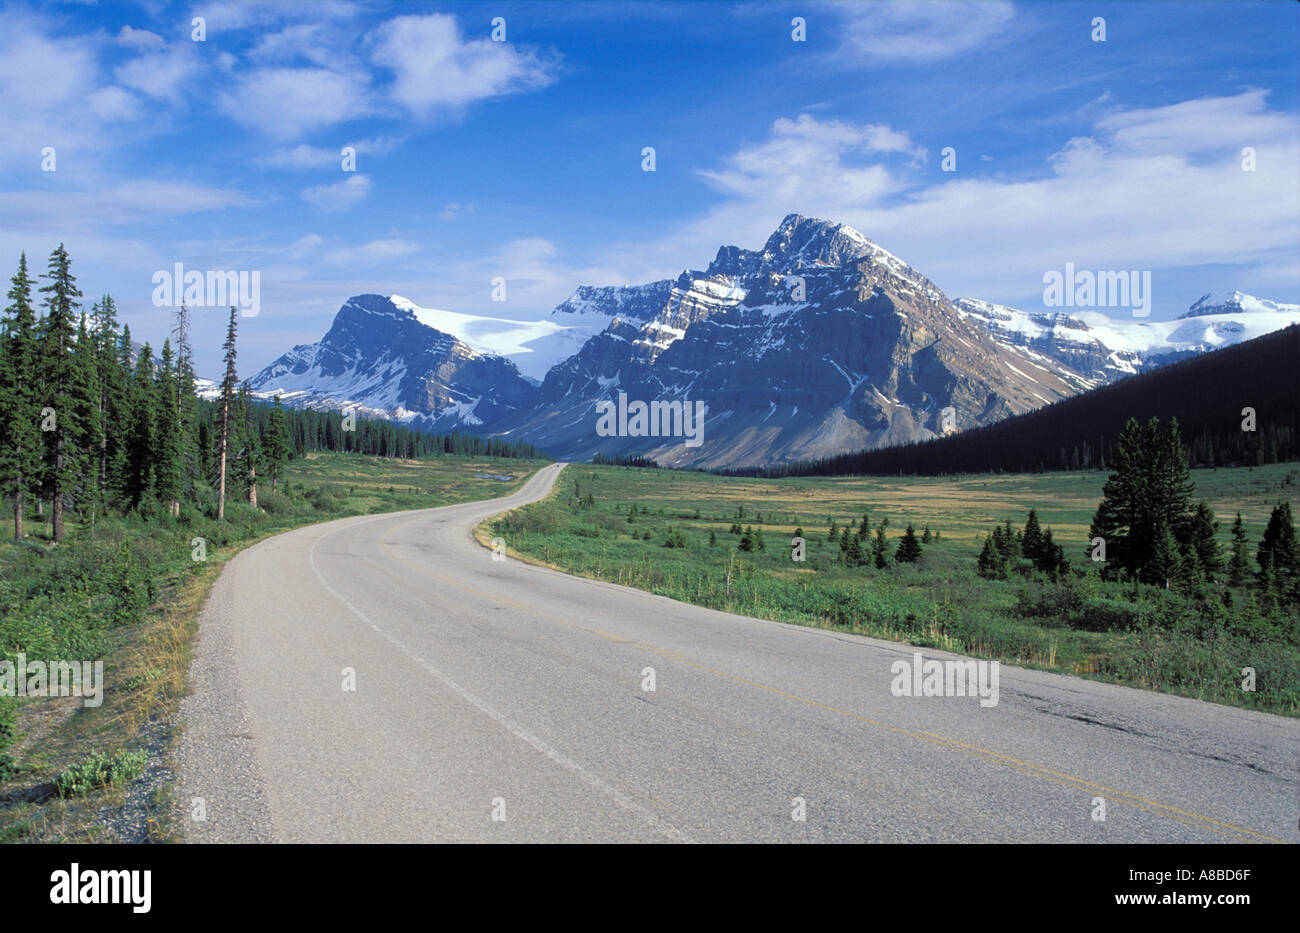 Mountain Highway Banff National Park Alberta Canada - Stock Image